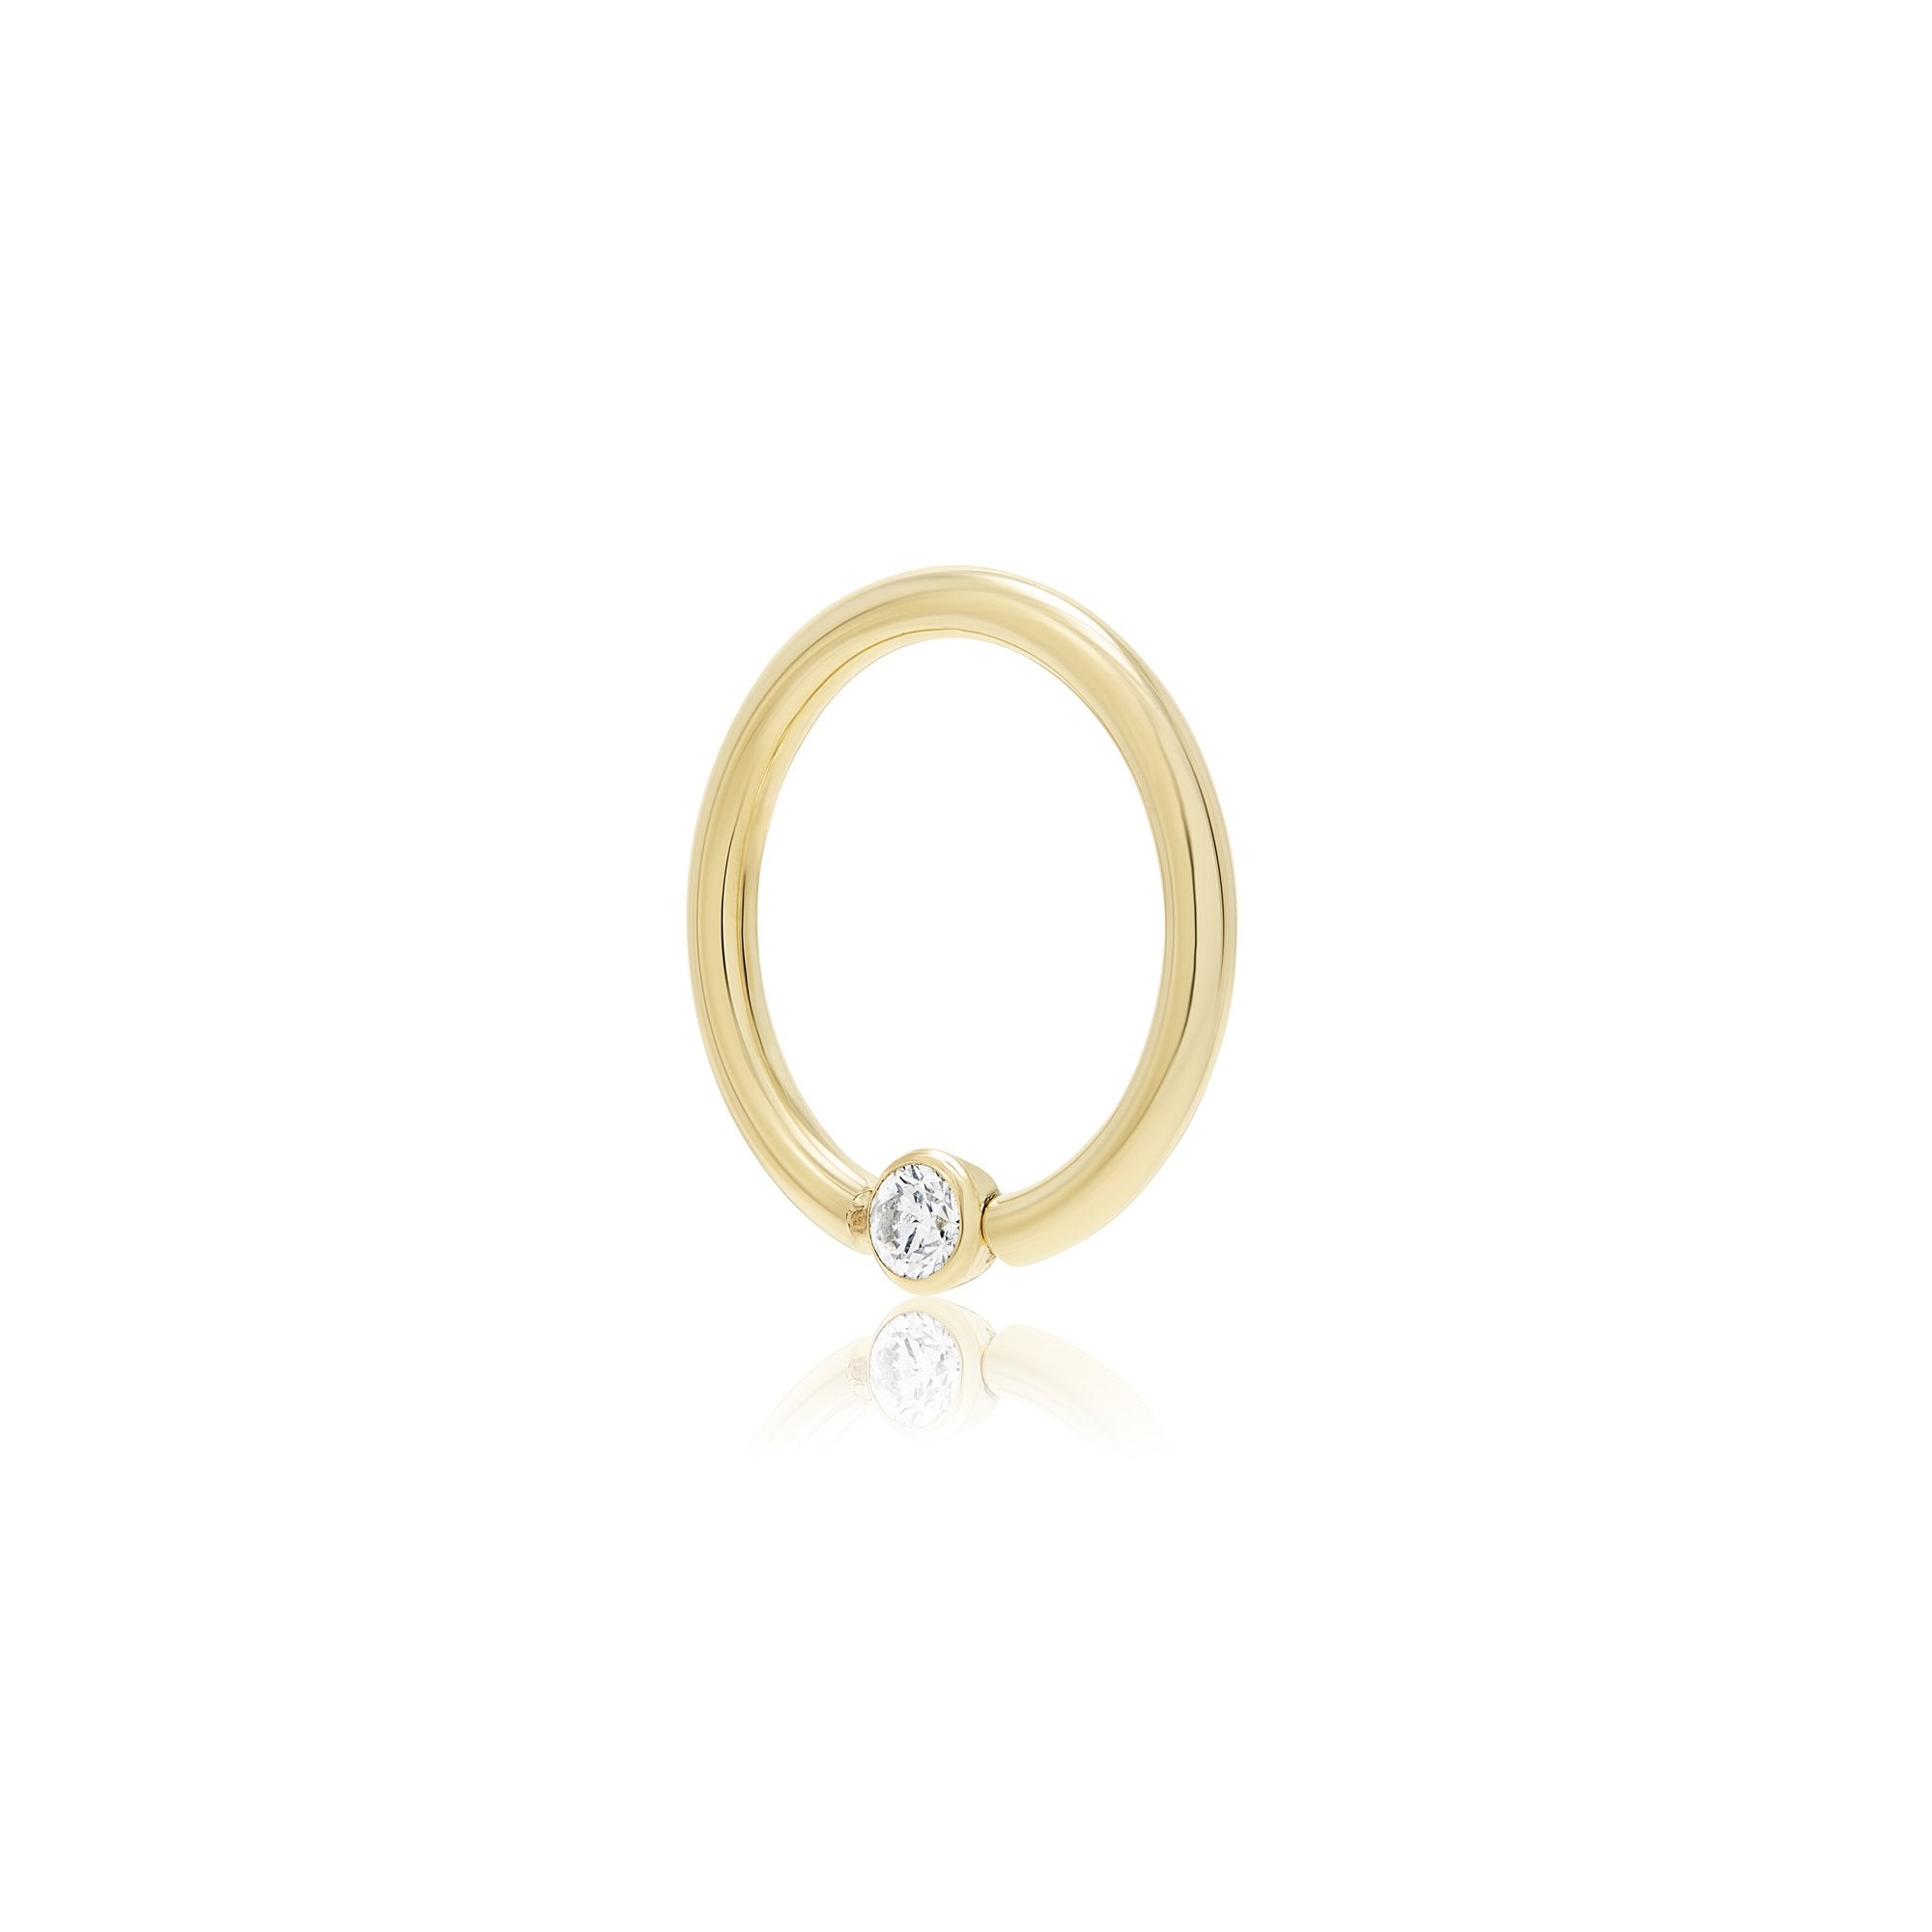 "16 Gauge Gold 3/8"" Bezel Diamond Fixed Bead Ring"